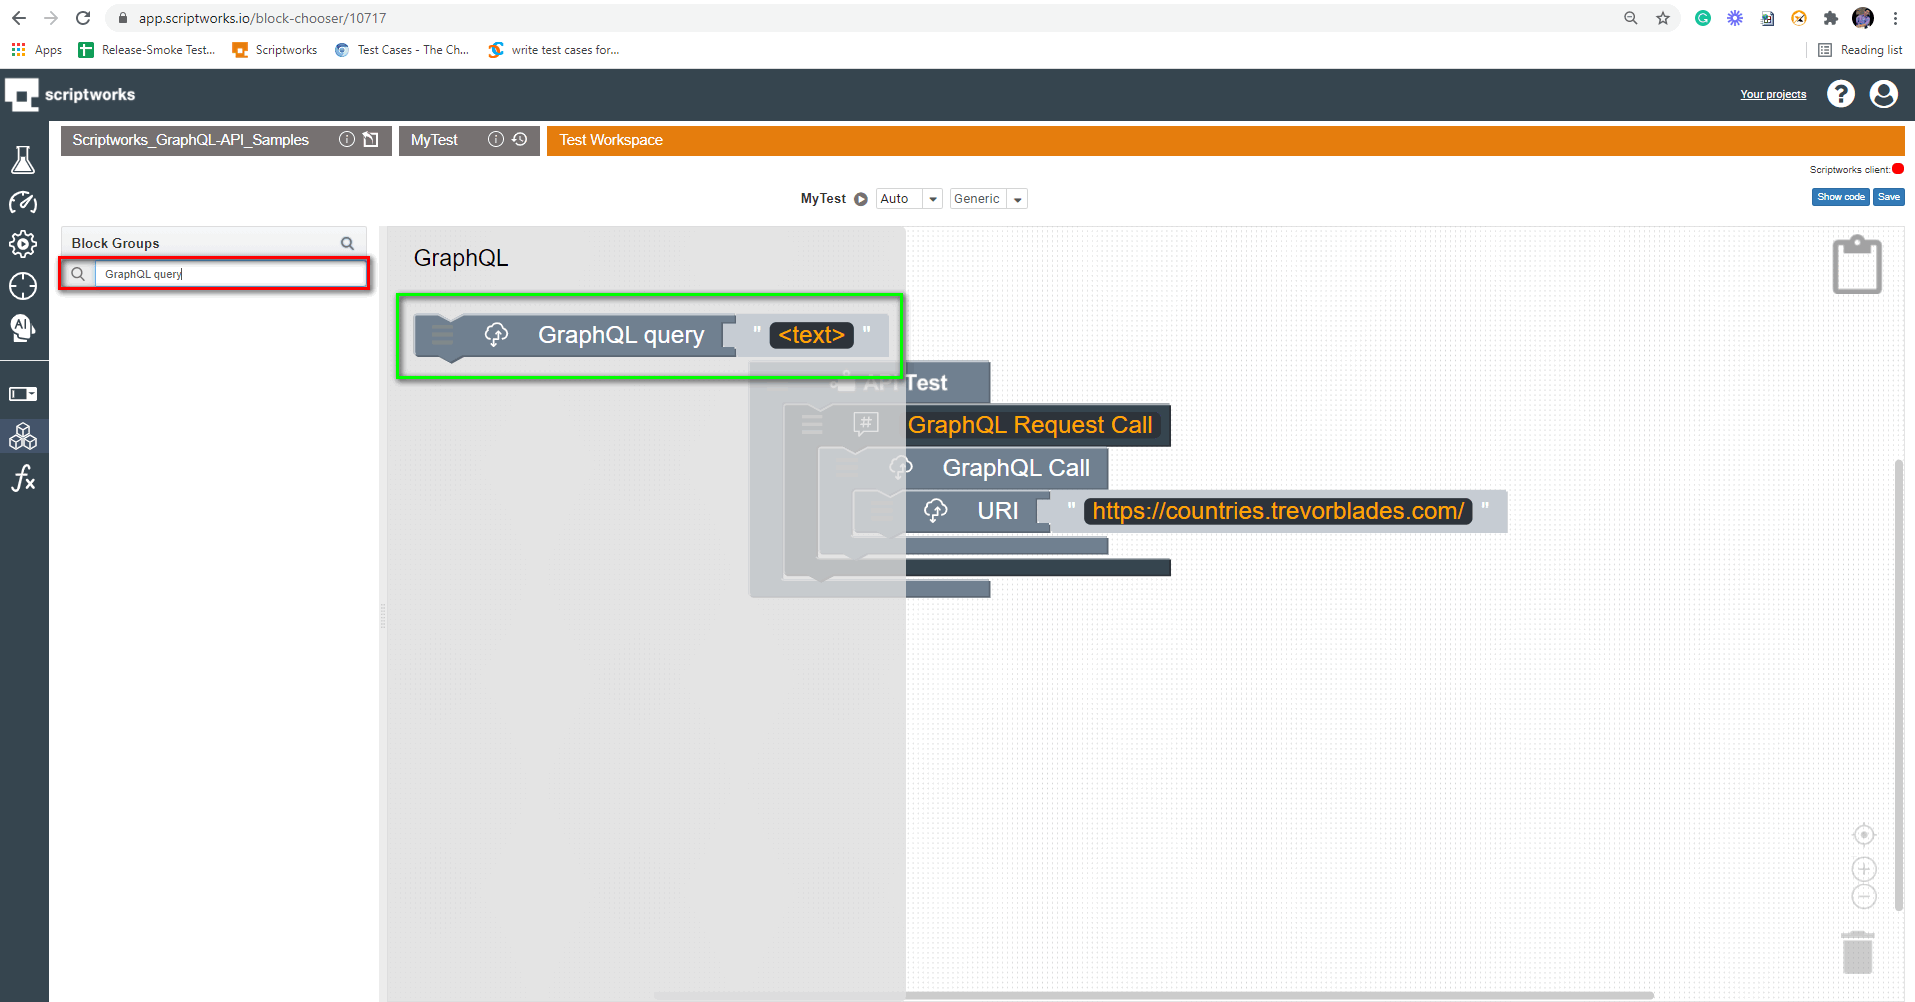 Search Graph QL Query on the left hand side panel